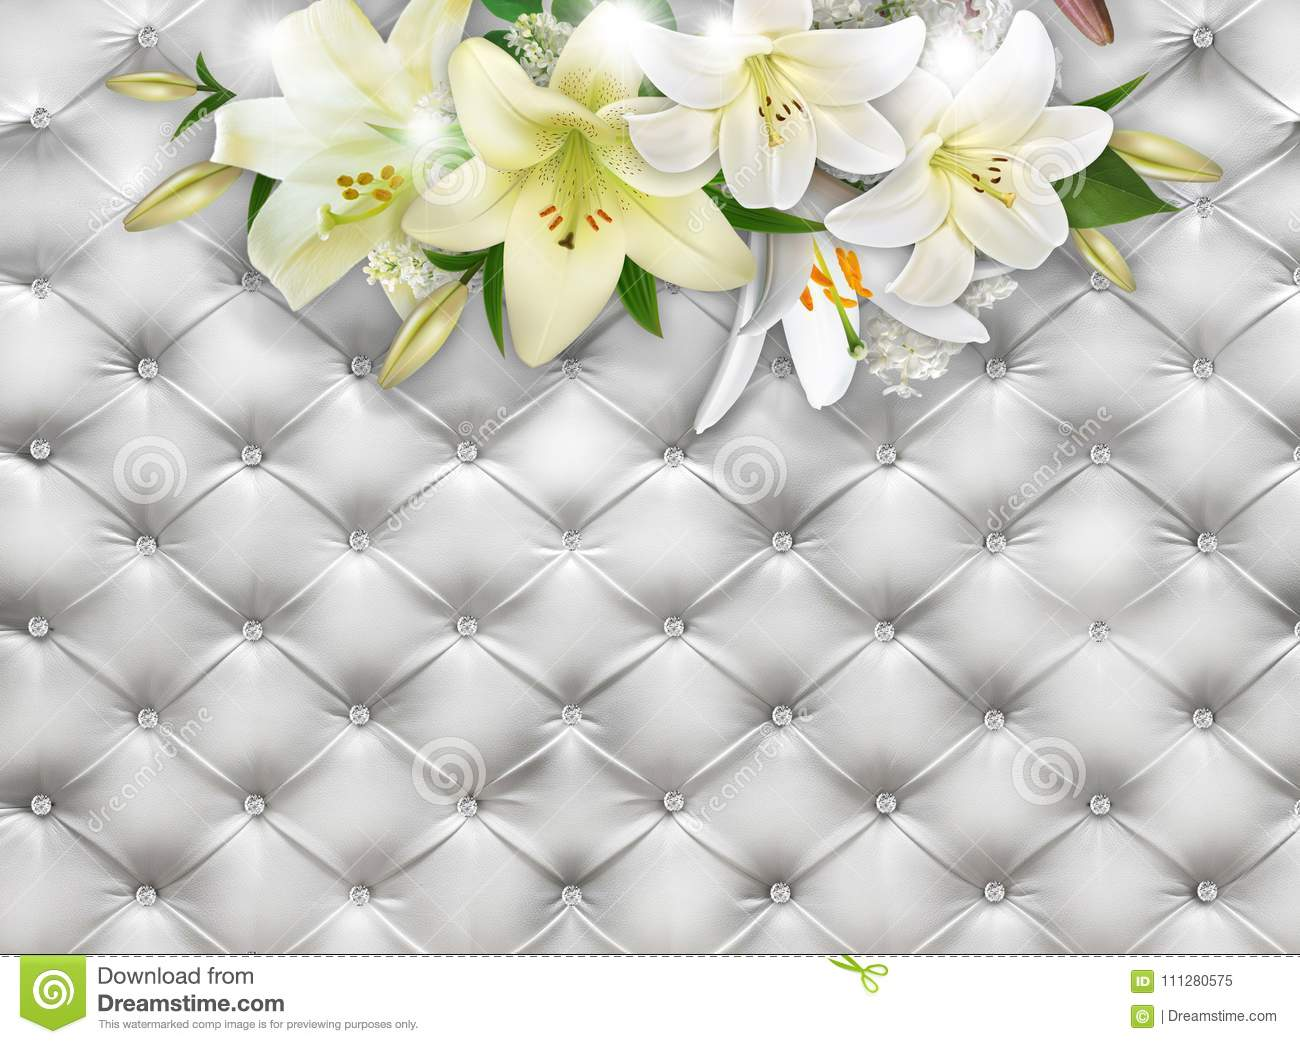 Bouquet of lilies on a background of white leather. Photo wallpaper. 3D rendering